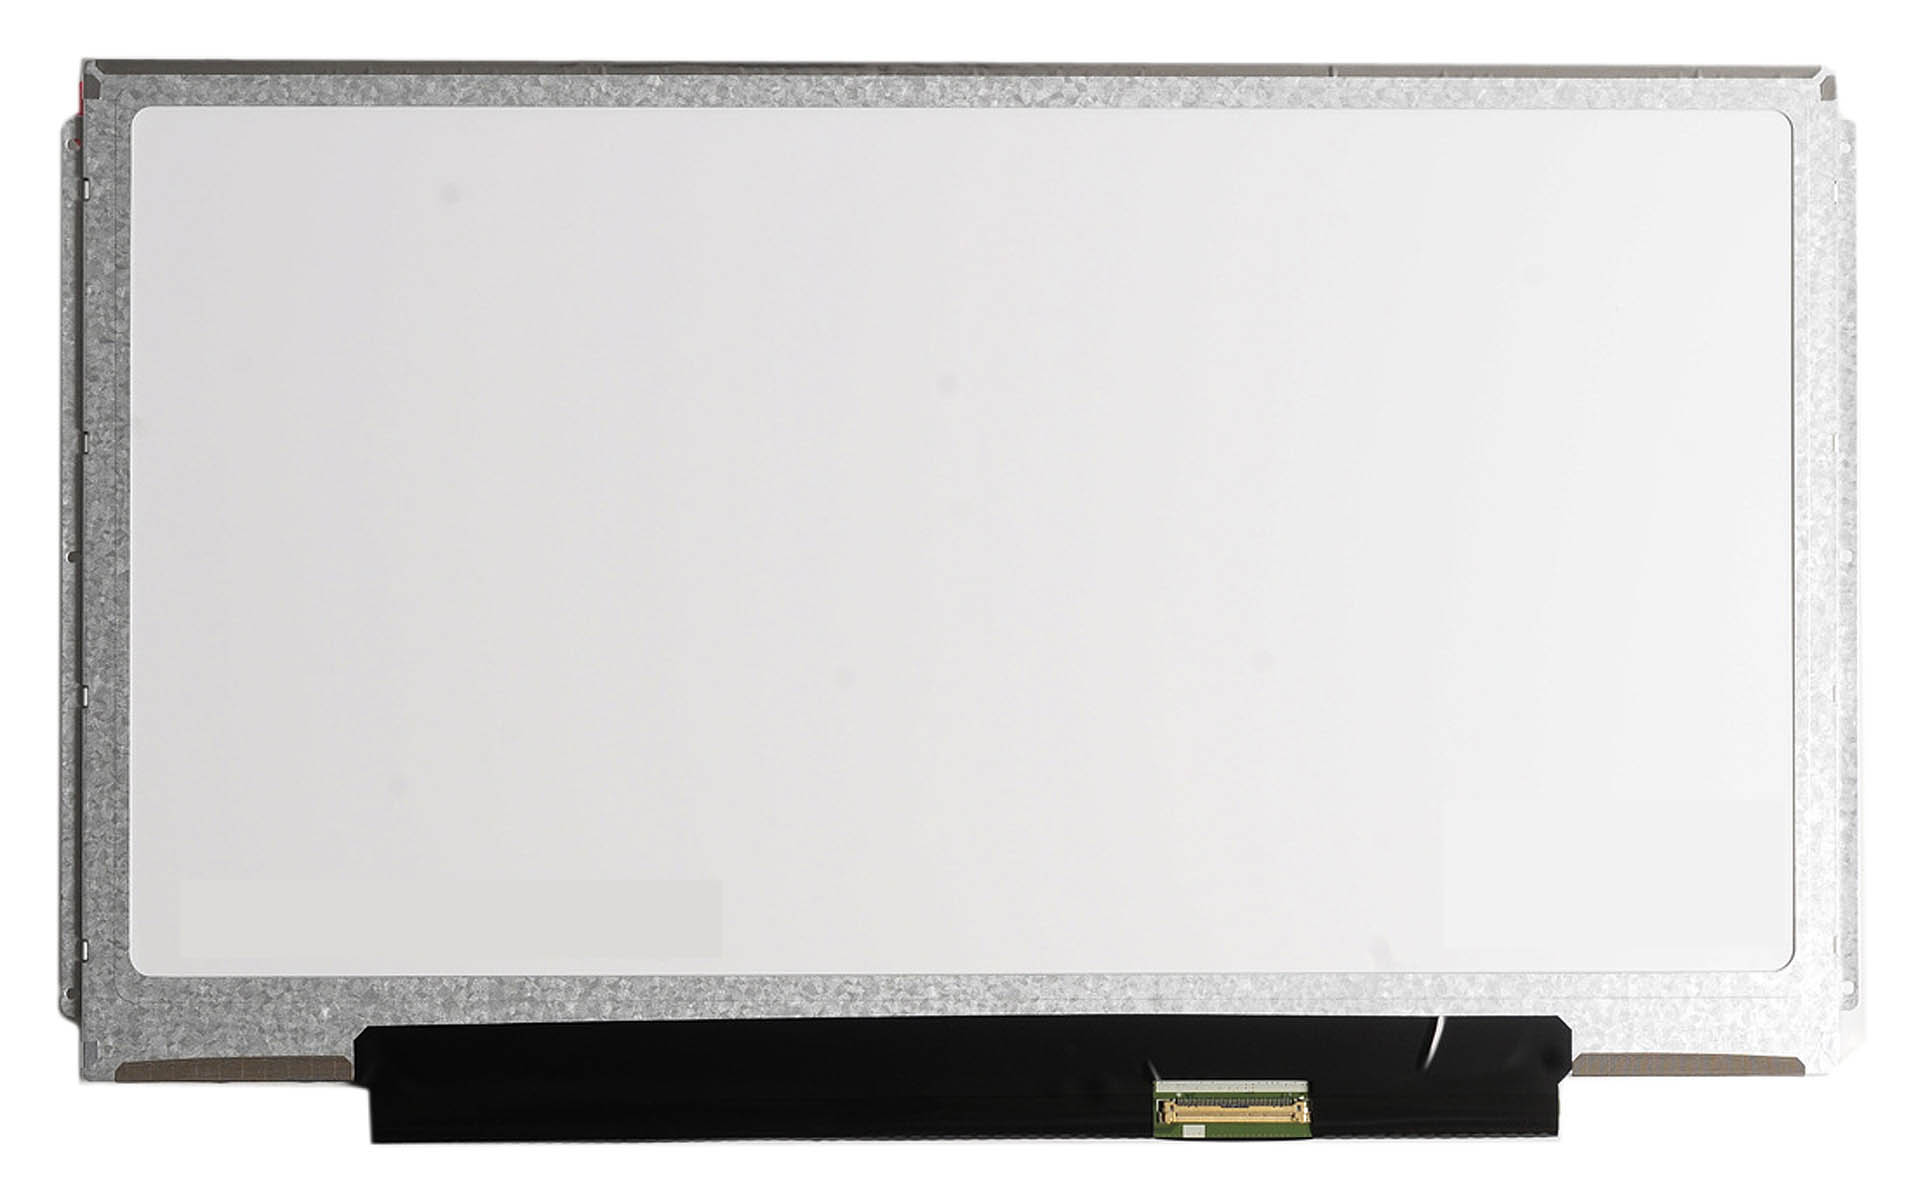 asus x551ma x552 x553m series 15 6 led lcd screen display panel hd ebay. Black Bedroom Furniture Sets. Home Design Ideas